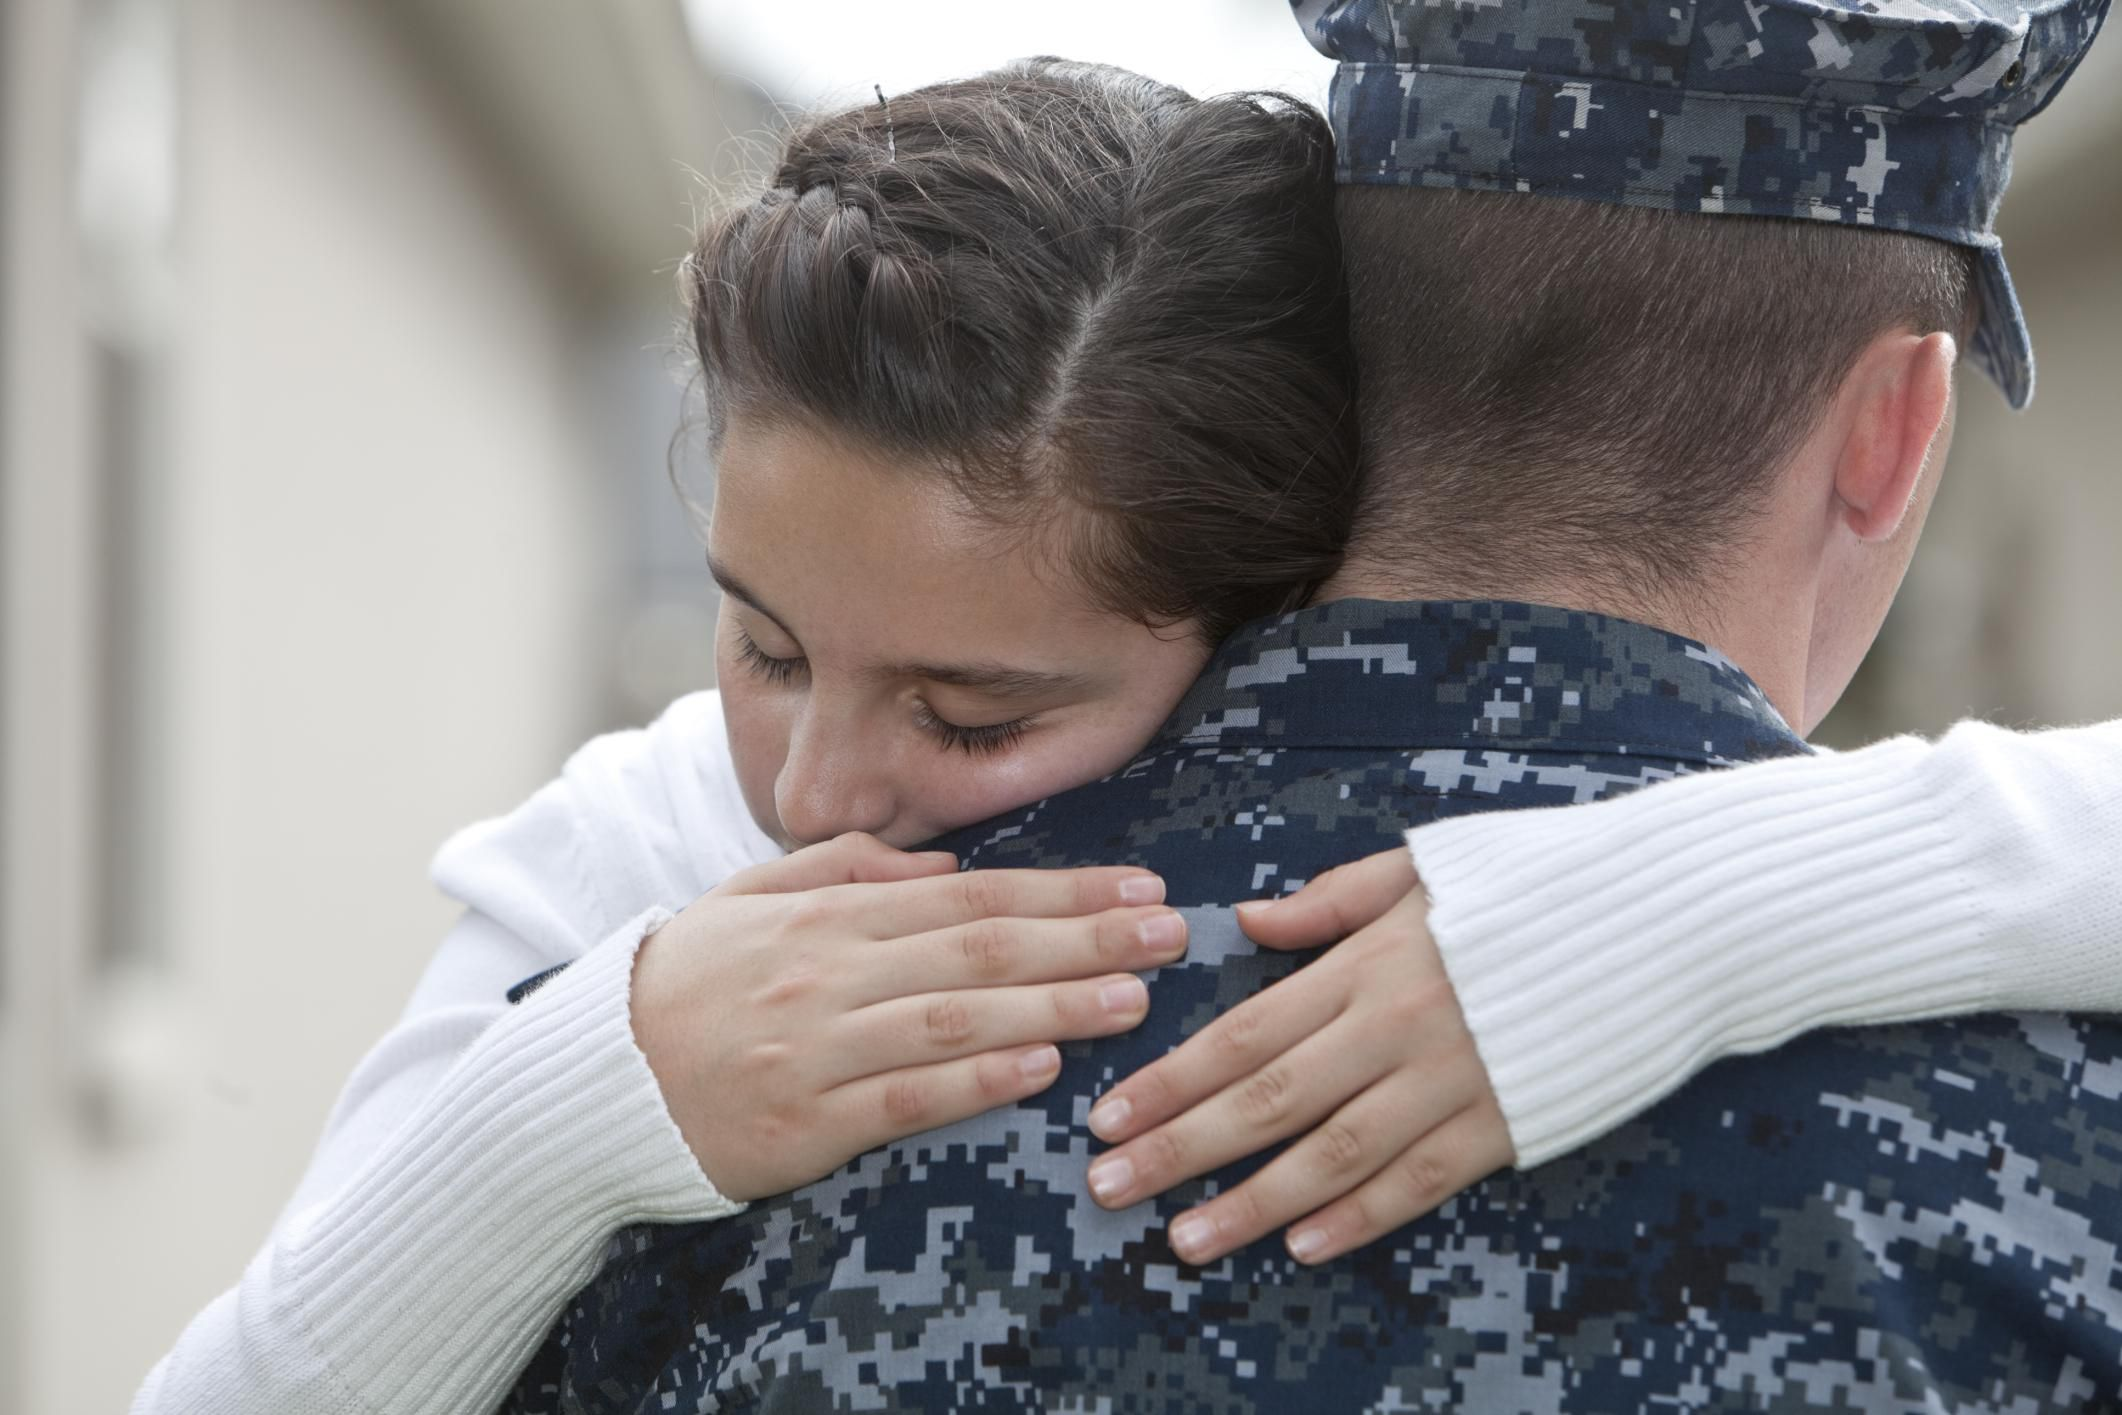 single parents serving in the military Policy as it impacts single parents serving in the air force military single parents are required to fulfill the terms of the contract that was signed.